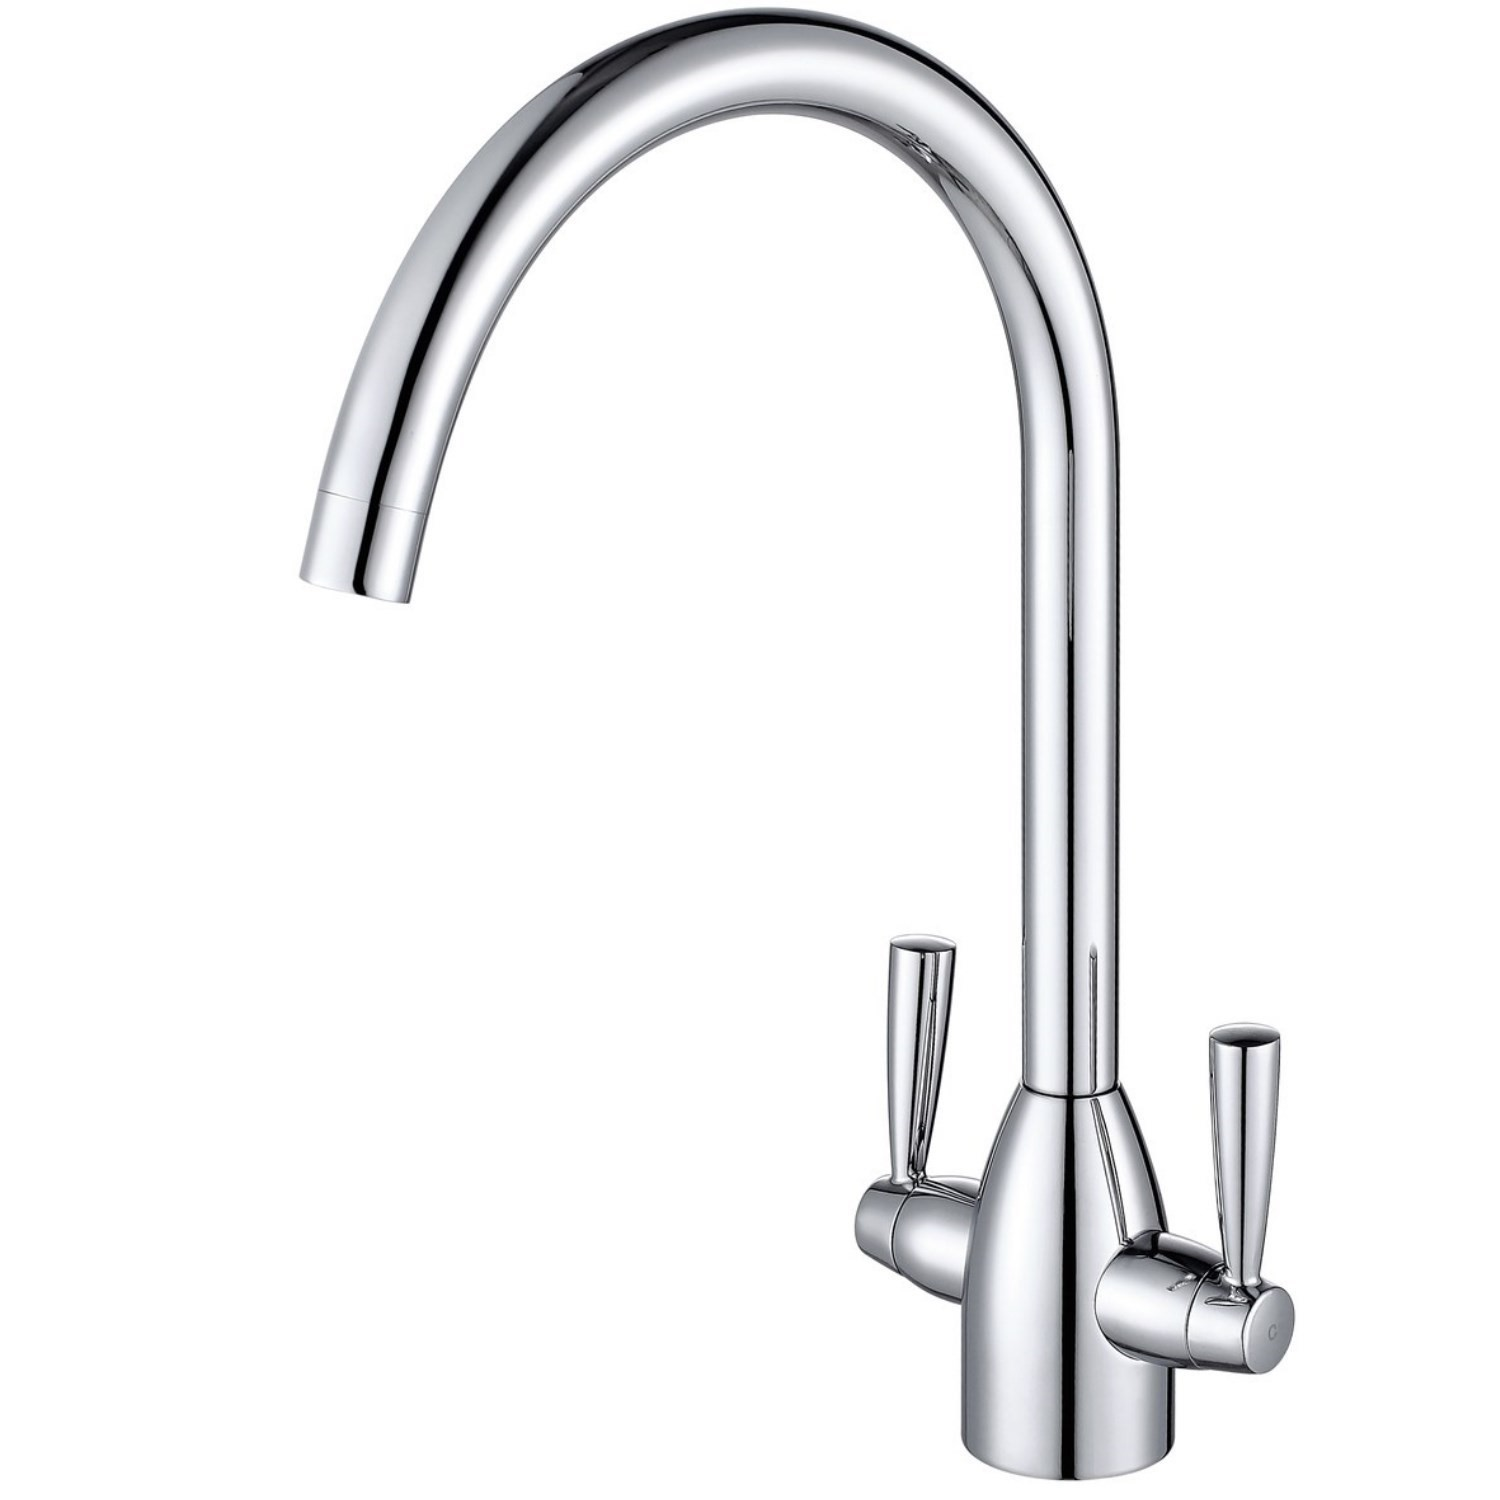 Plumbing Tools Taylor & Moore Dual Lever Kitchen Sink Mixer Tap - Polished Chrome